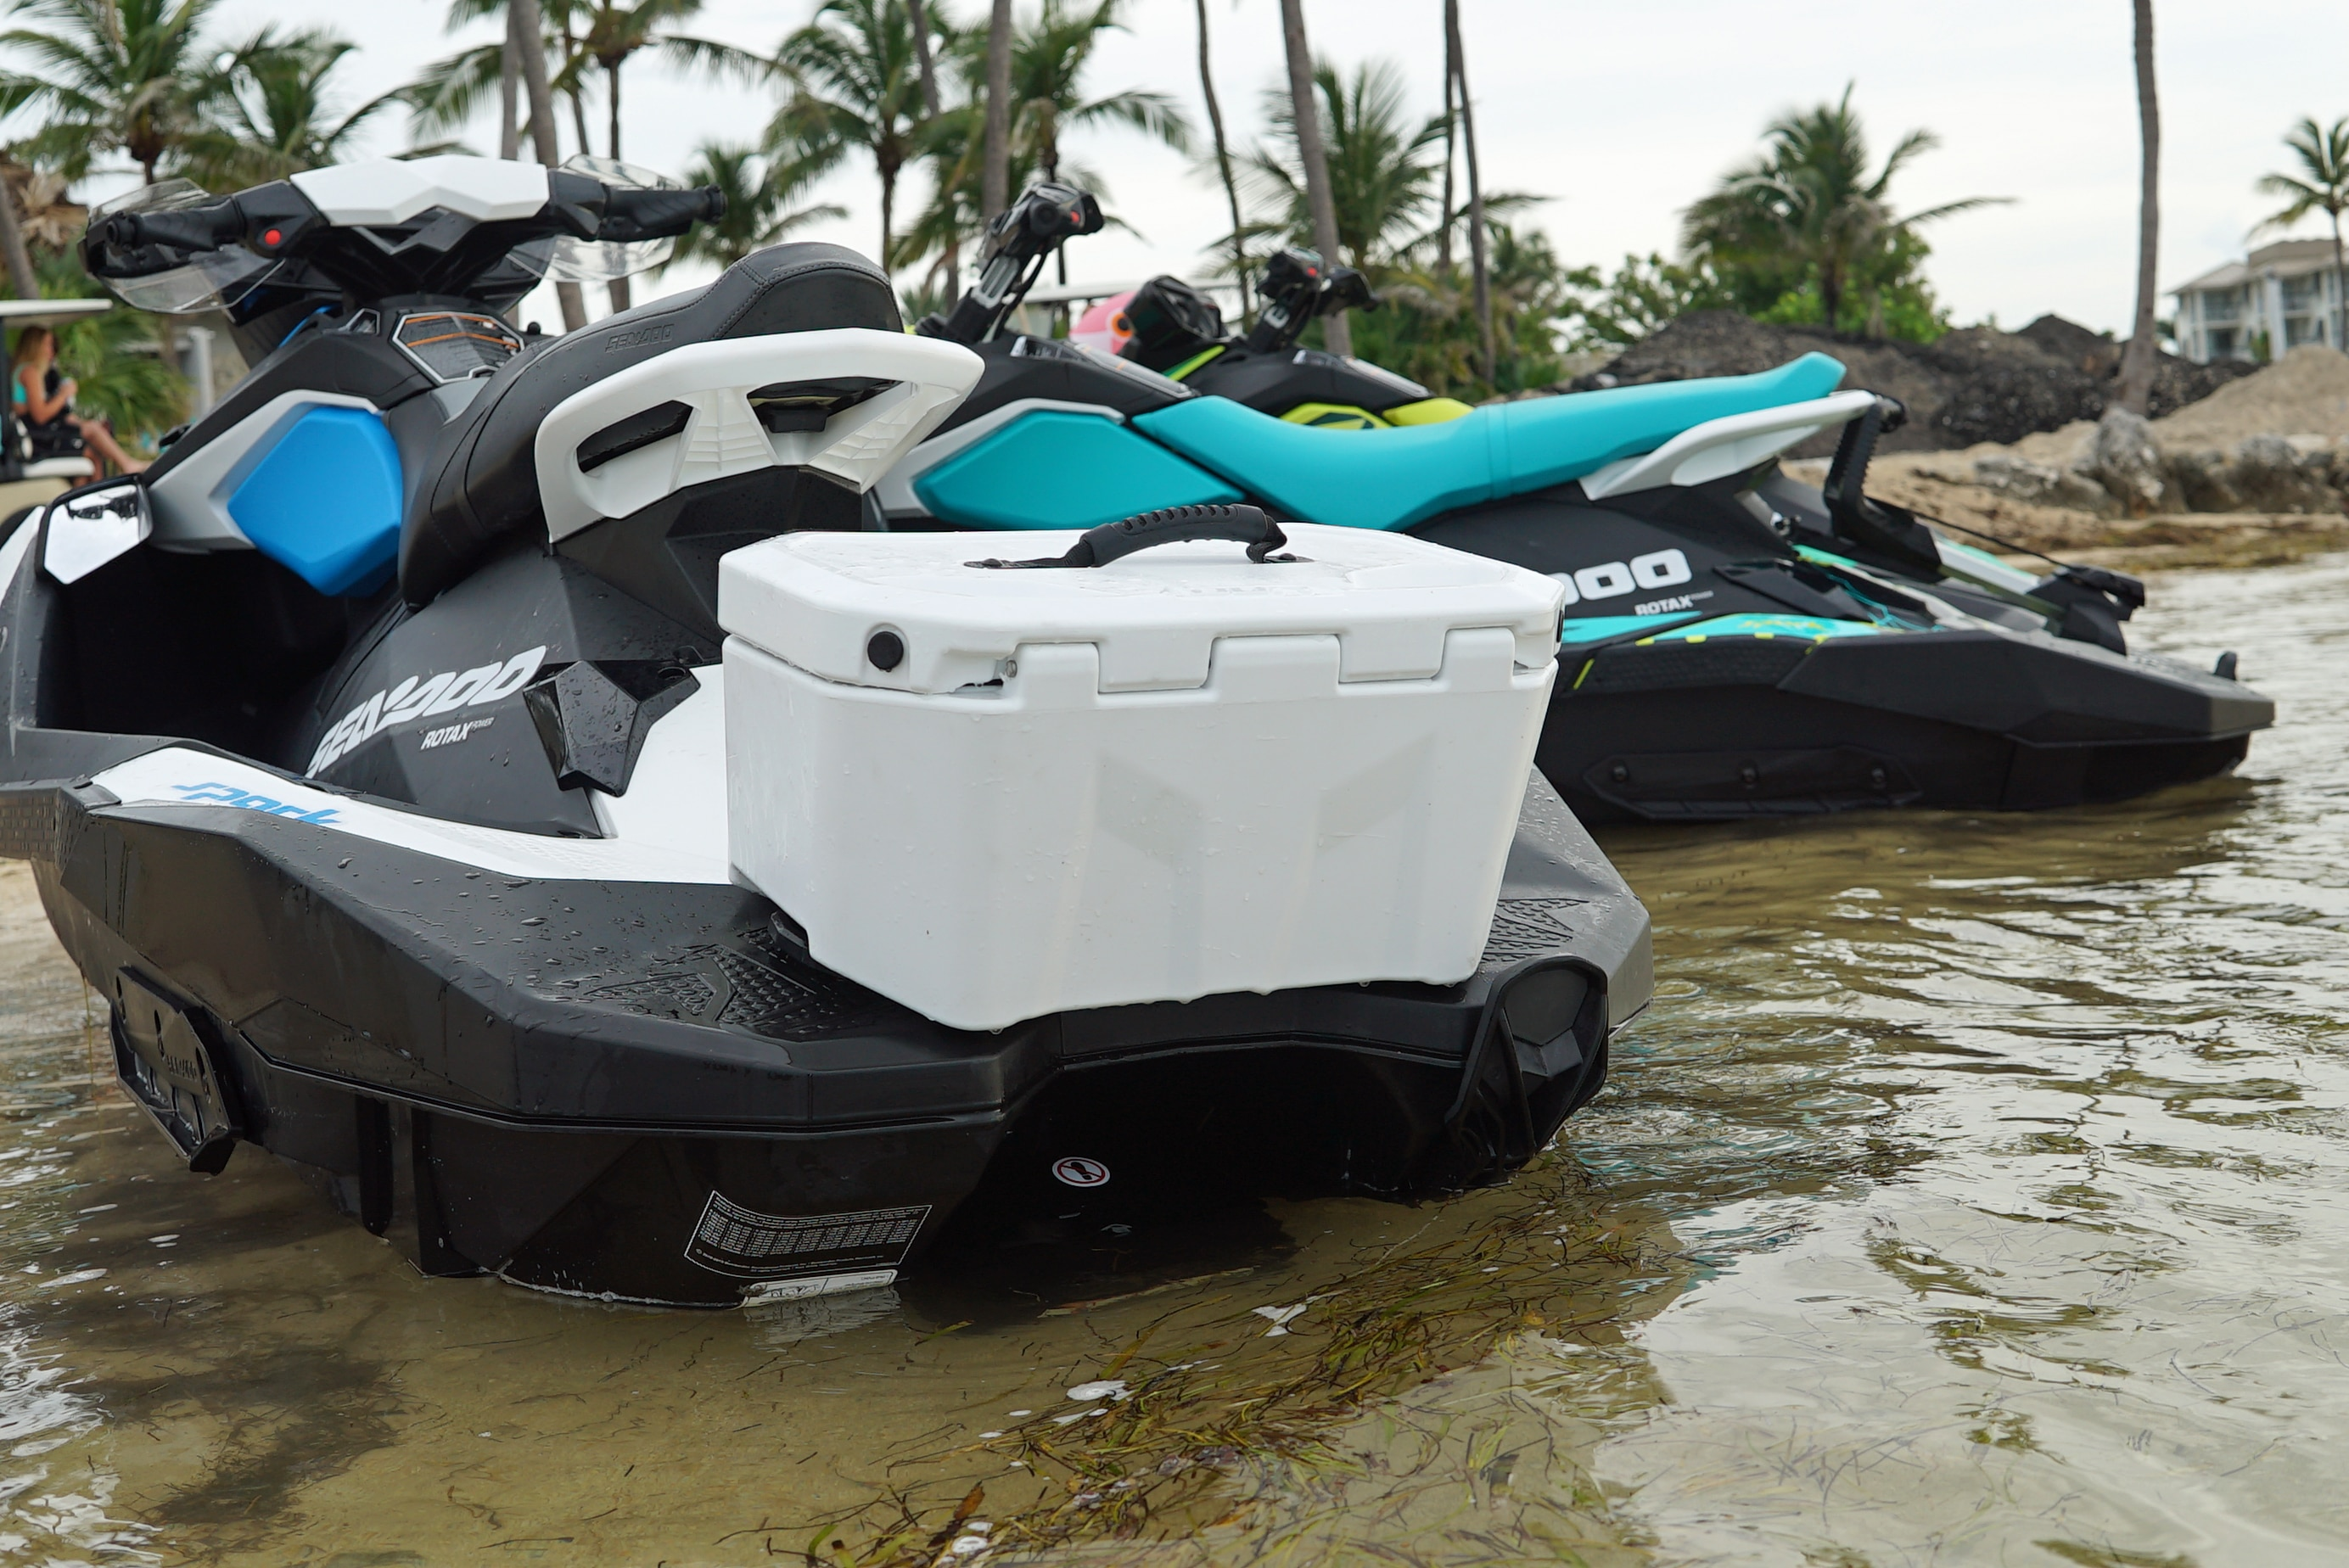 2019 Sea-Doo SPARK LinQ cooler_a